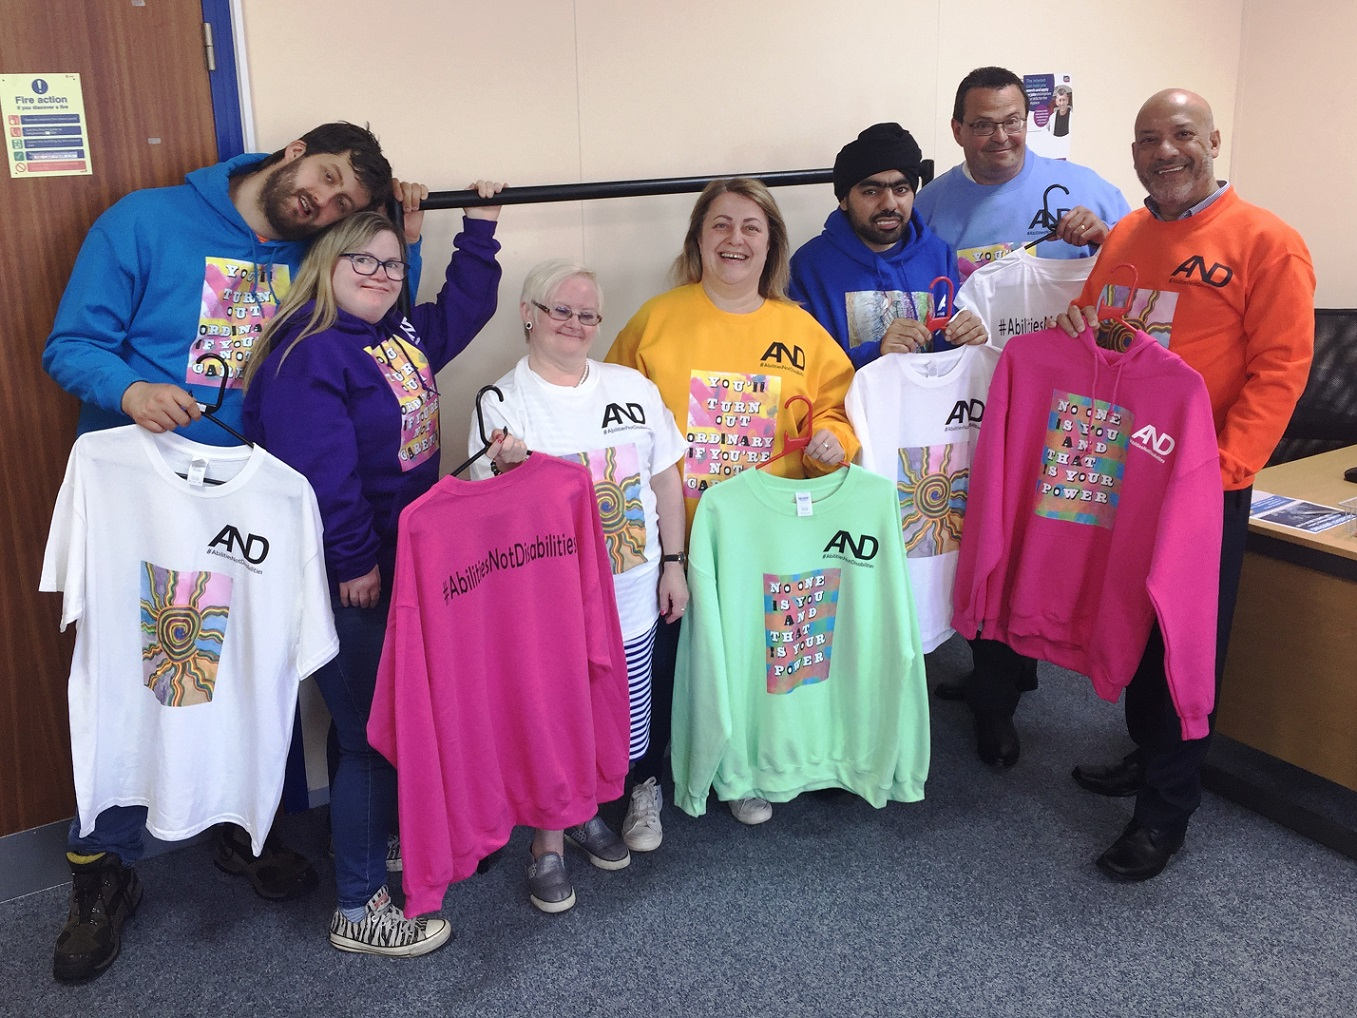 Ali Akbor (far right) and Adrian Green (second from right) with Angie Marshall from Leep 1 (centre), Susan Hanley (third from left) and other designers from the #AbilitiesNotDisabilities project